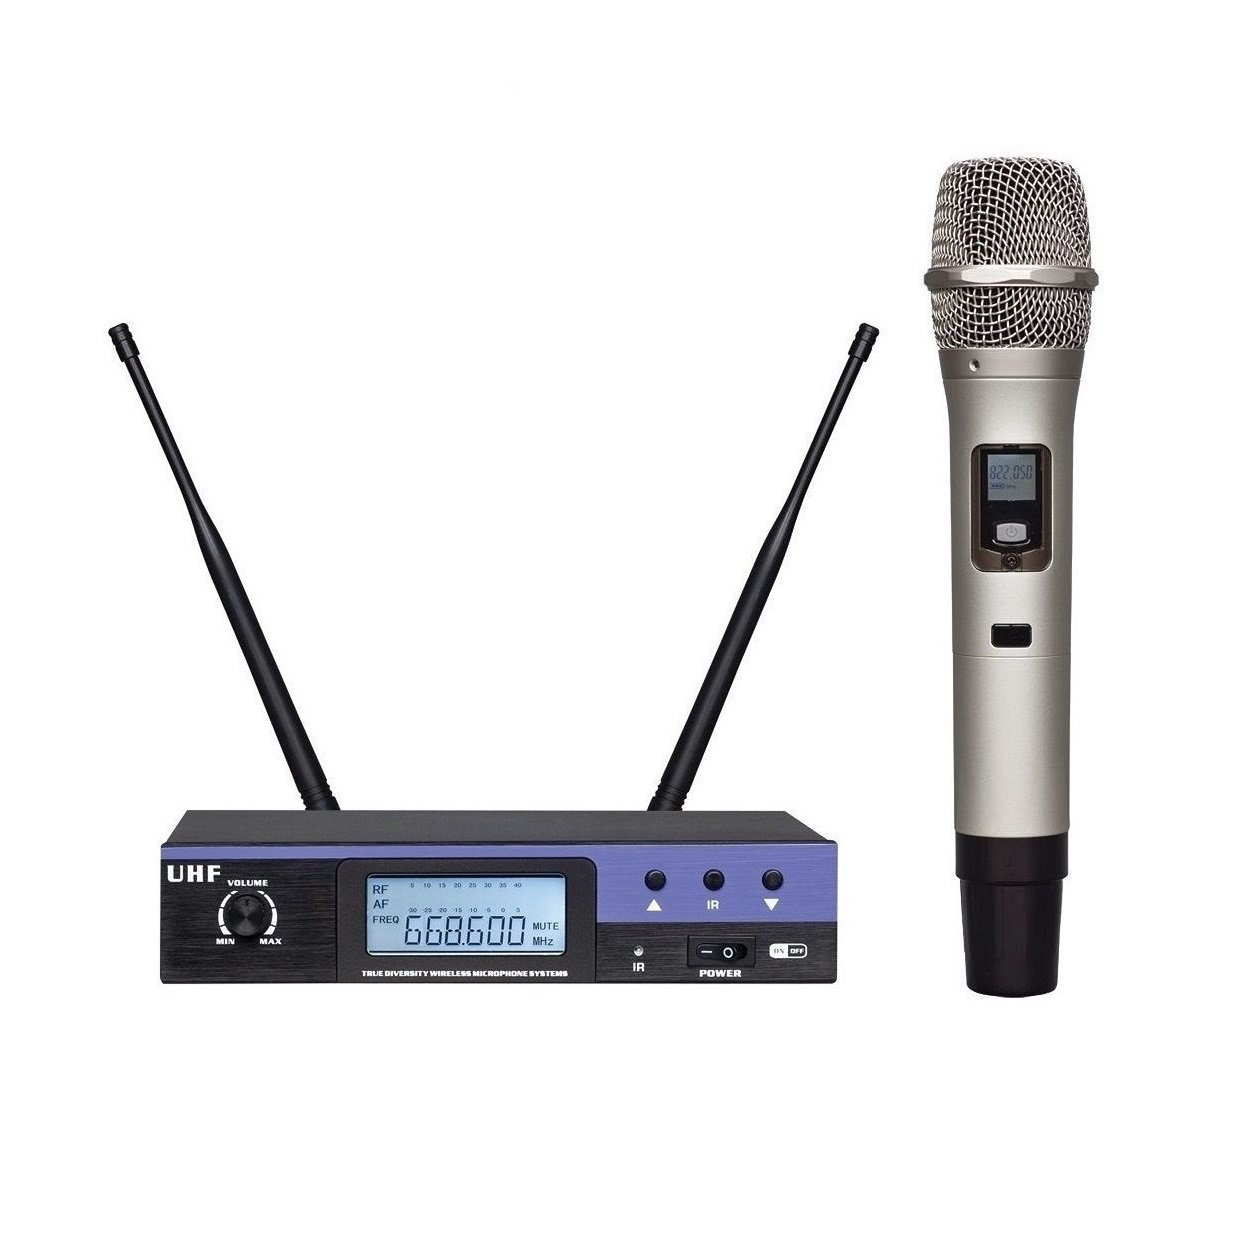 Wireless Microphone System Professional UHF with Handhelds microphone microfone For Church,Home Karaoke, Business Meetings.Easy To Set Up